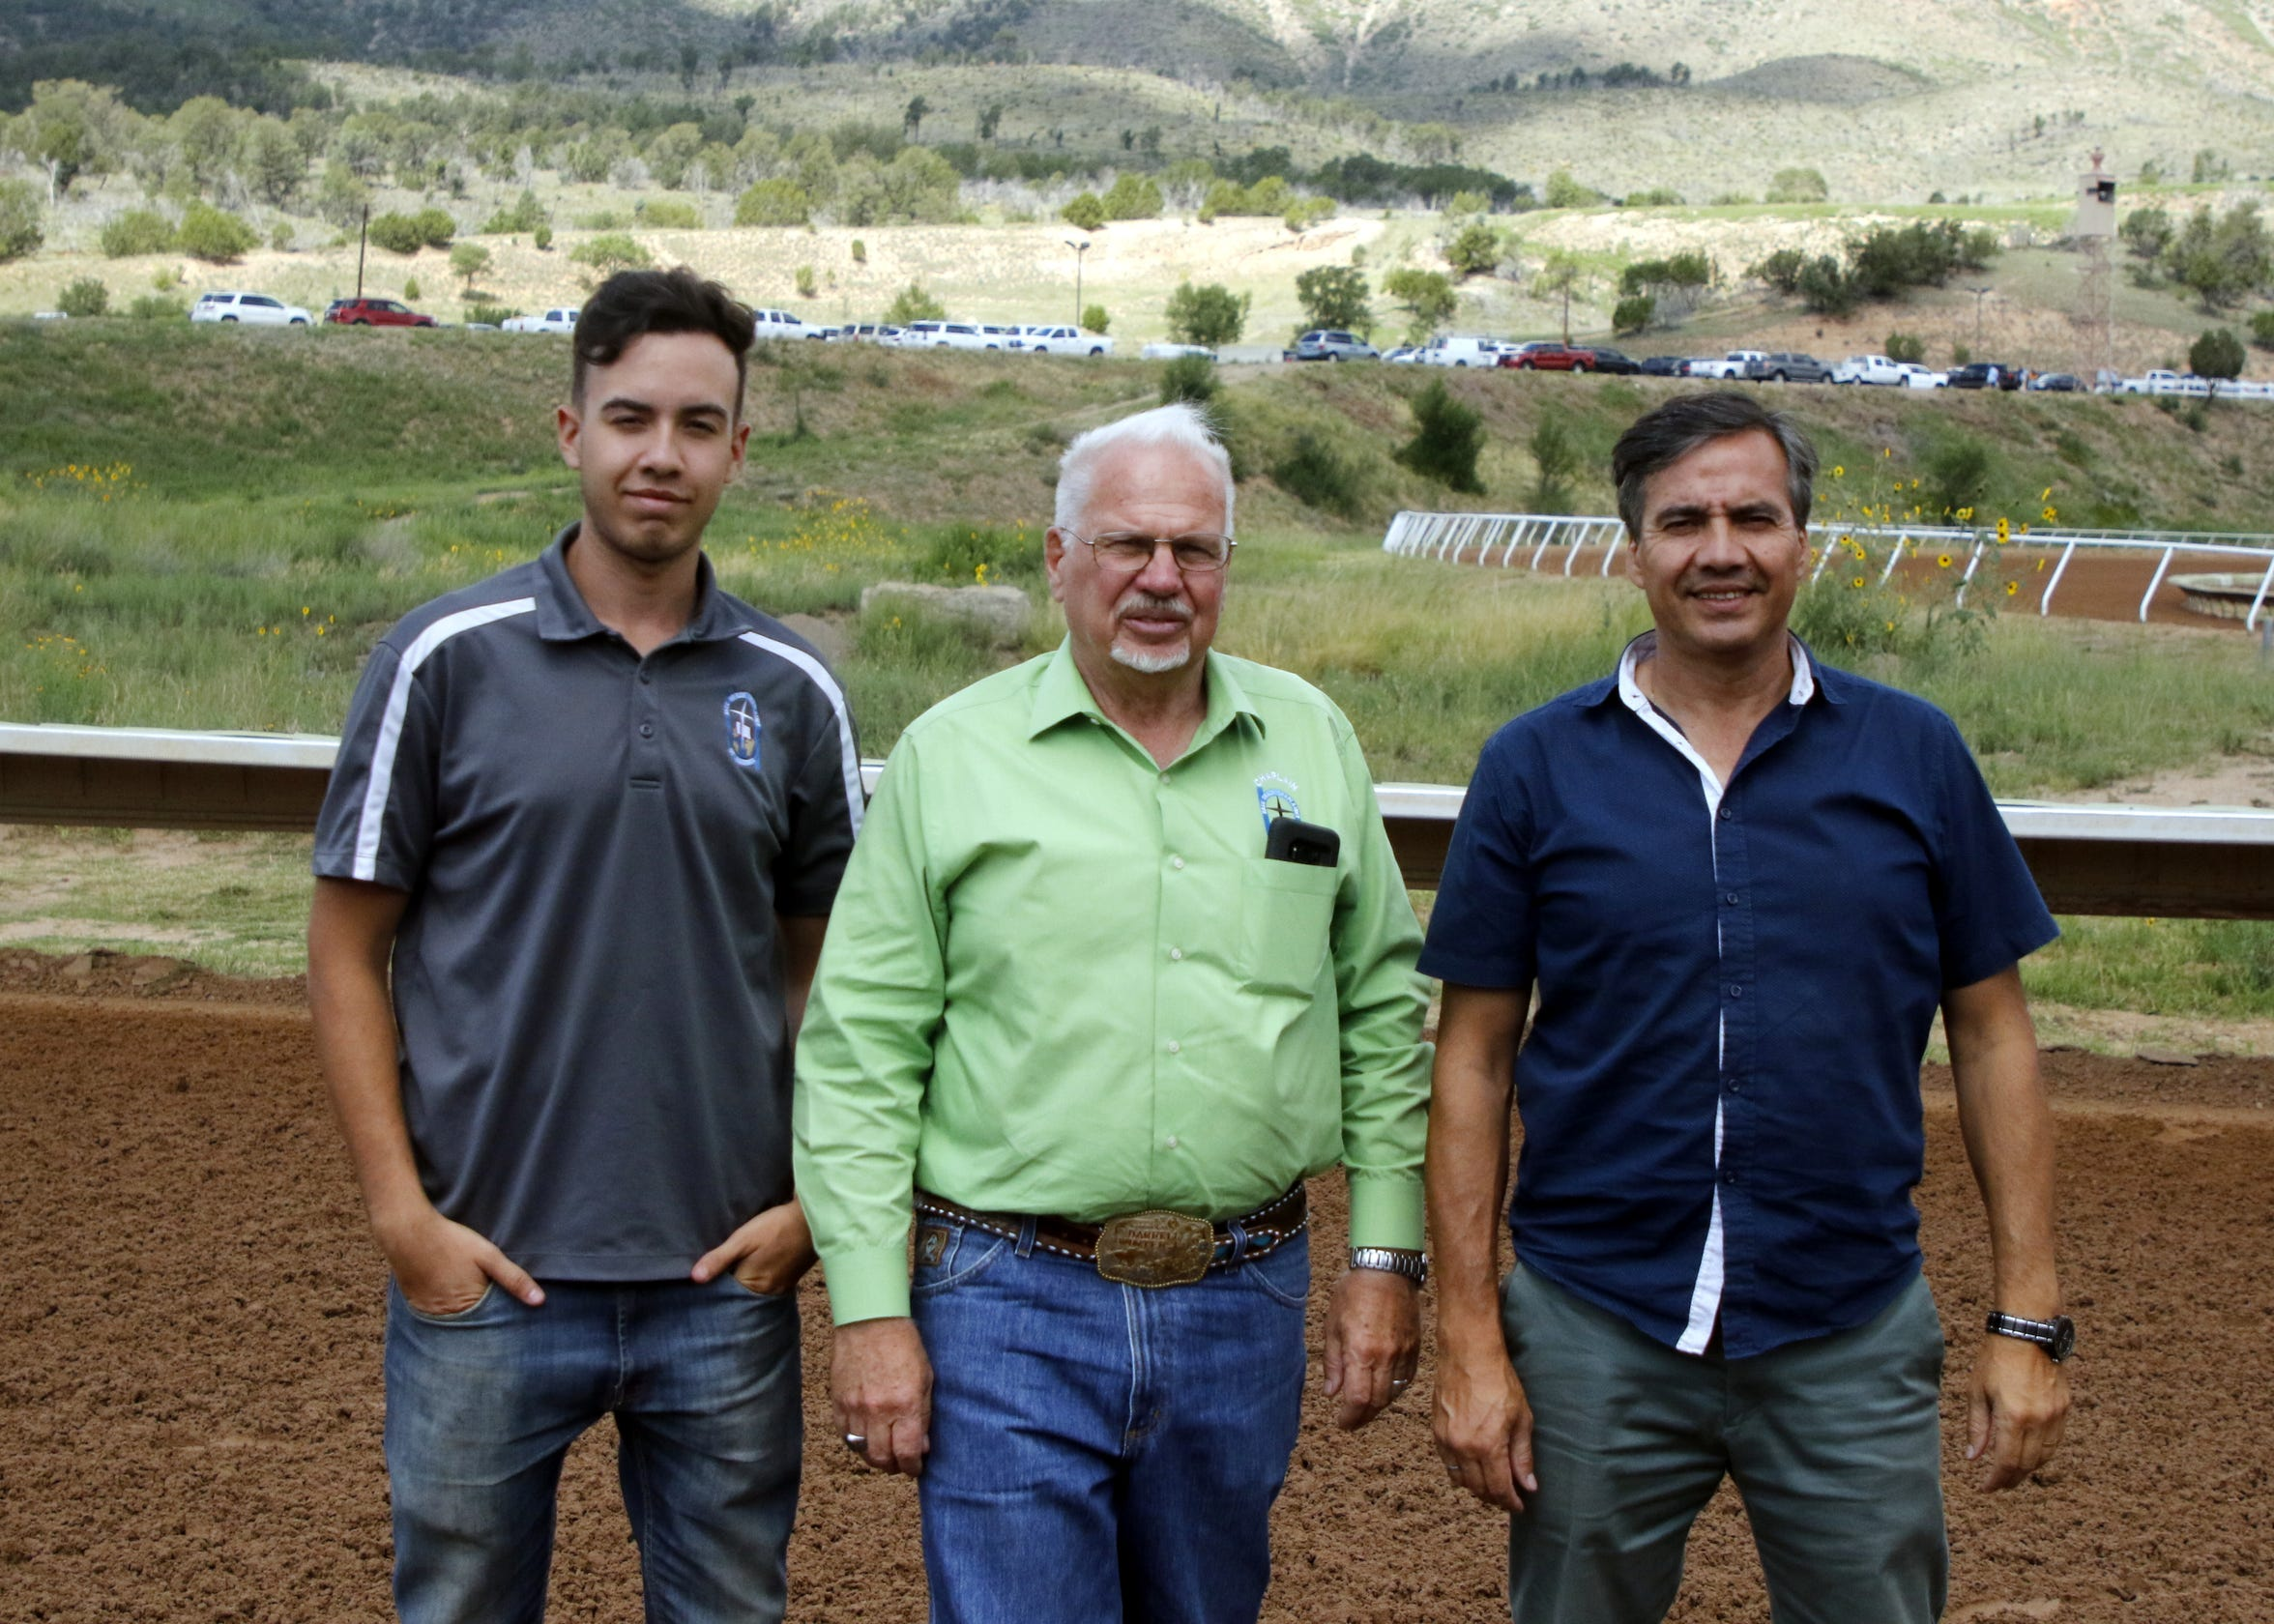 Left to right: Ezekiel Crespo, Chaplain Darrell Winter and Fabian Crespo pose at the Ruidoso Downs Racetrack on Labor Day Weekend. The Crespo's offer Spanish prayers to assist Winter.